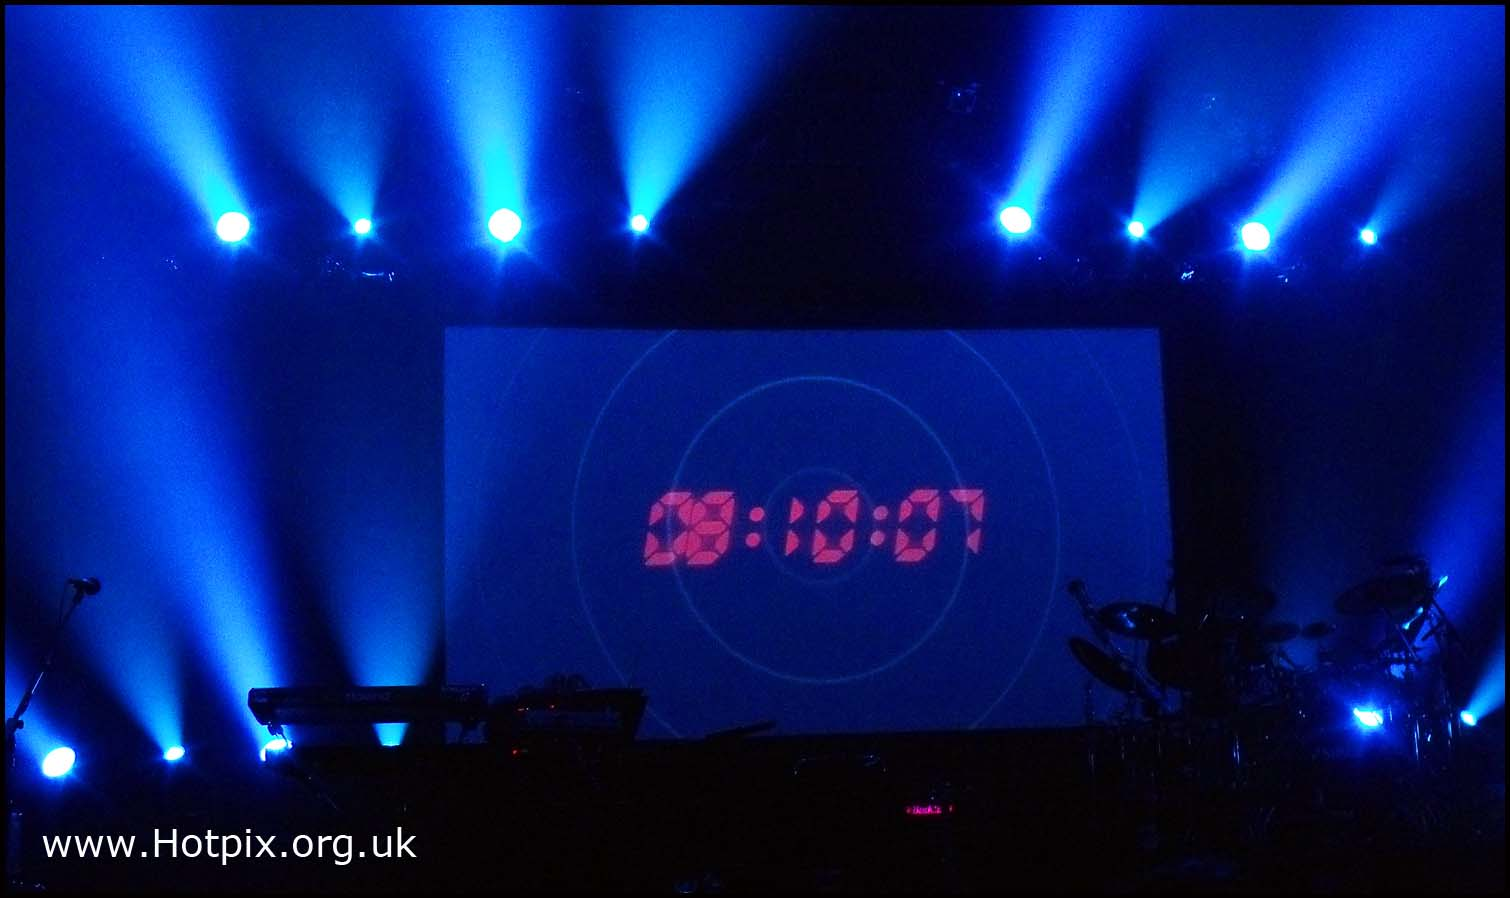 Manchester,Academy,December,2009,Porcupine,Tree,countdown,count,down,clock,digital,incident,second,half,prog,rock,stage,gig,live,performance,vintage,electronics,electronic,counter,watch,time,hands,digits,numbers,mecanism,move,movement,uni,univ,university,academy1,academy2,music,musician,city,night,nighttime,light,lighting,roll,indie,tour,touring,UK,GB,britain,england,clocks,hotpics,hotpic,hotpick,hotpicks,hotpix!